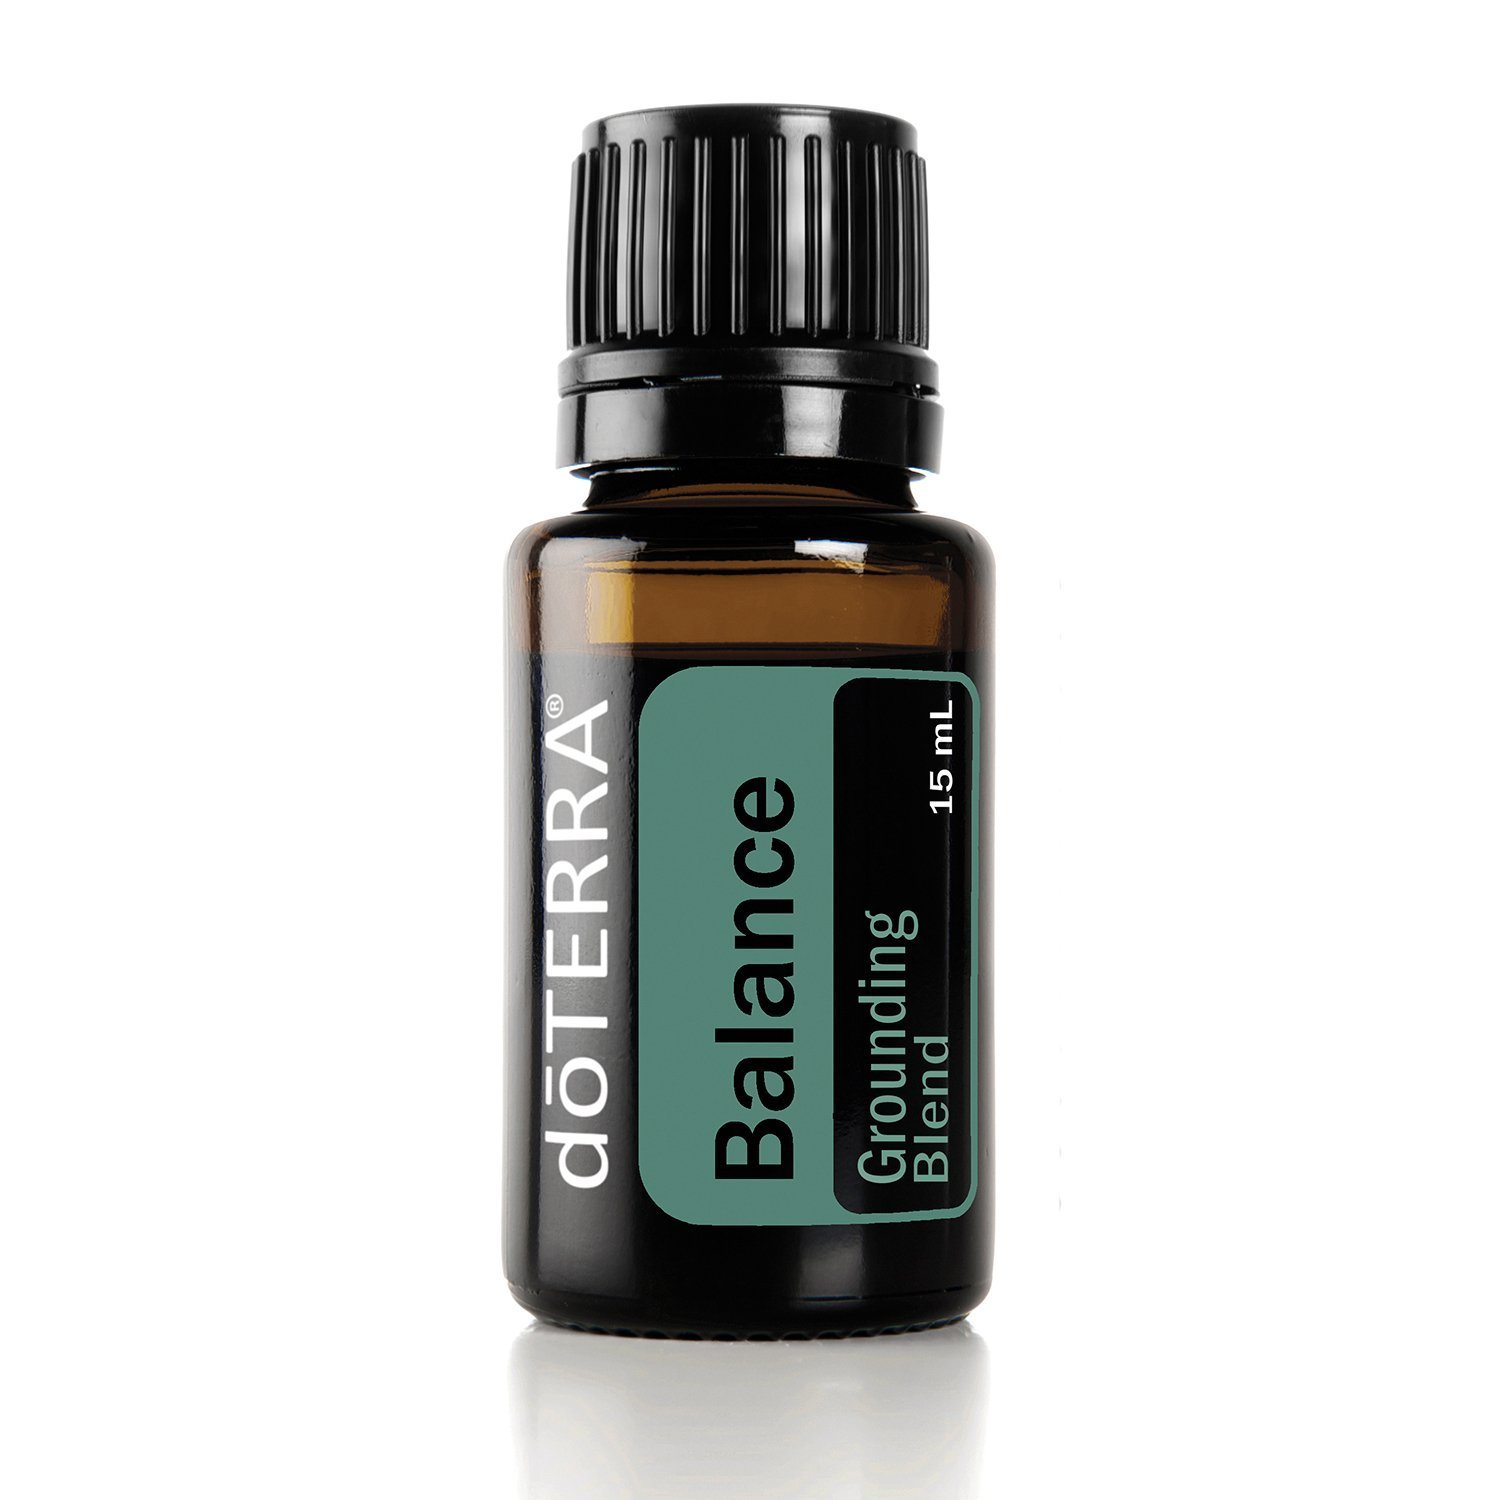 doTERRA - Balance Essential Oil Grounding Blend - Promotes Relaxation, Tranquility and Balance, May Help Ease Anxious Feelings; For Diffusion or Topical Use - 15 mL 3101